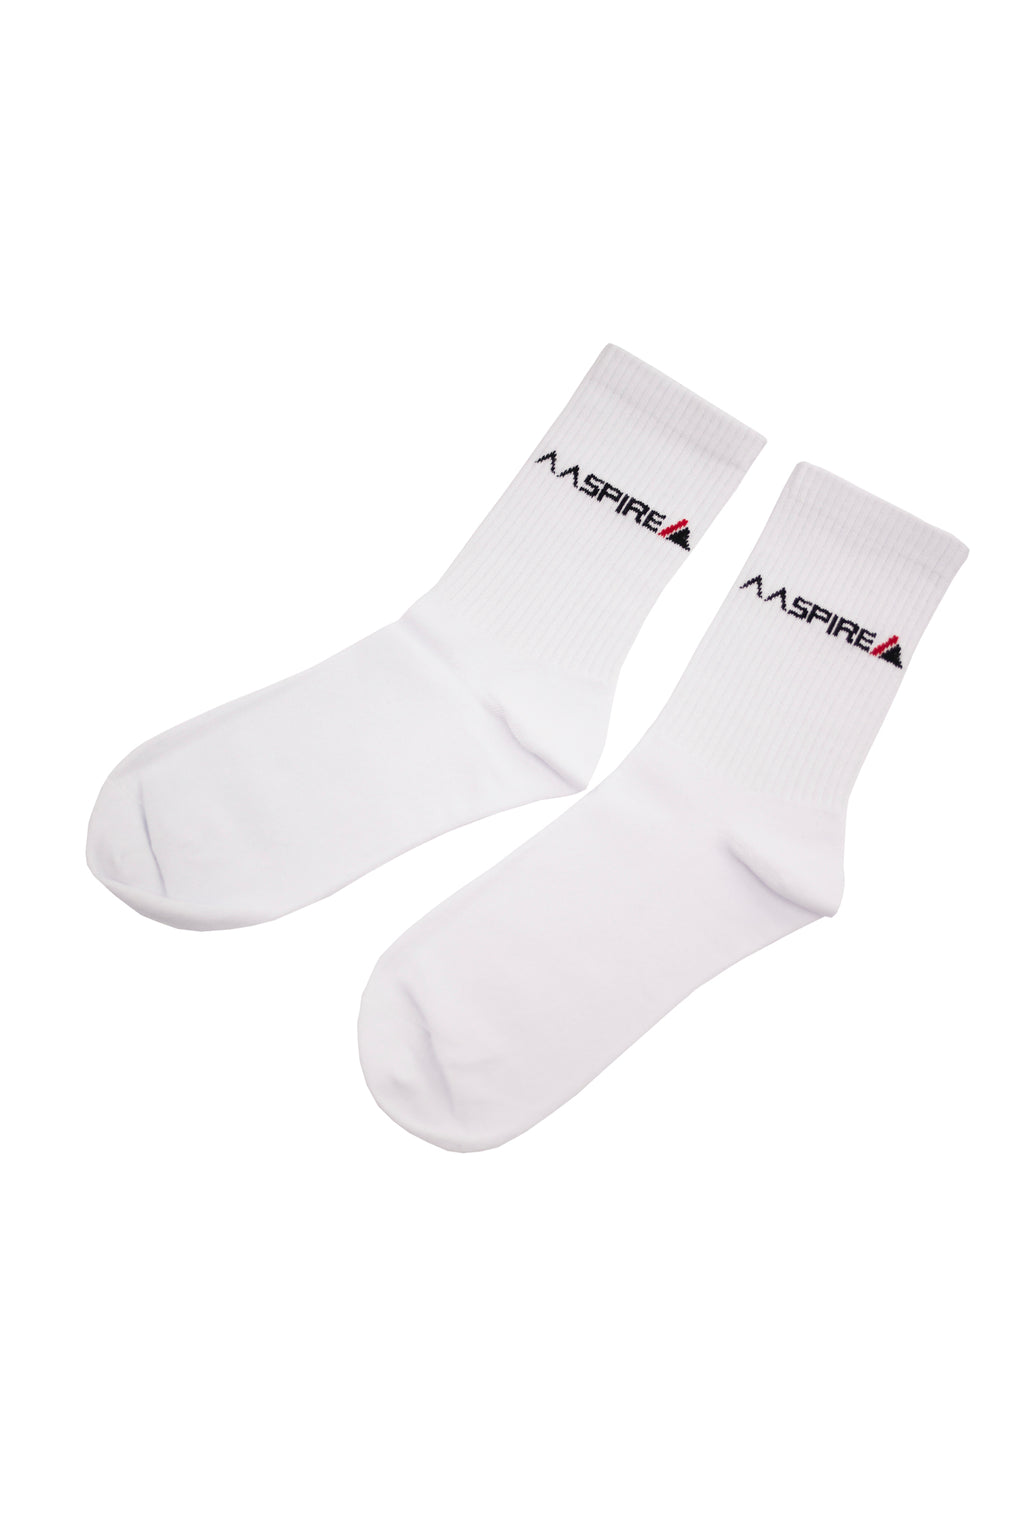 AASPIRE ORIGINAL 2 PACK SOCKS (WHITE)